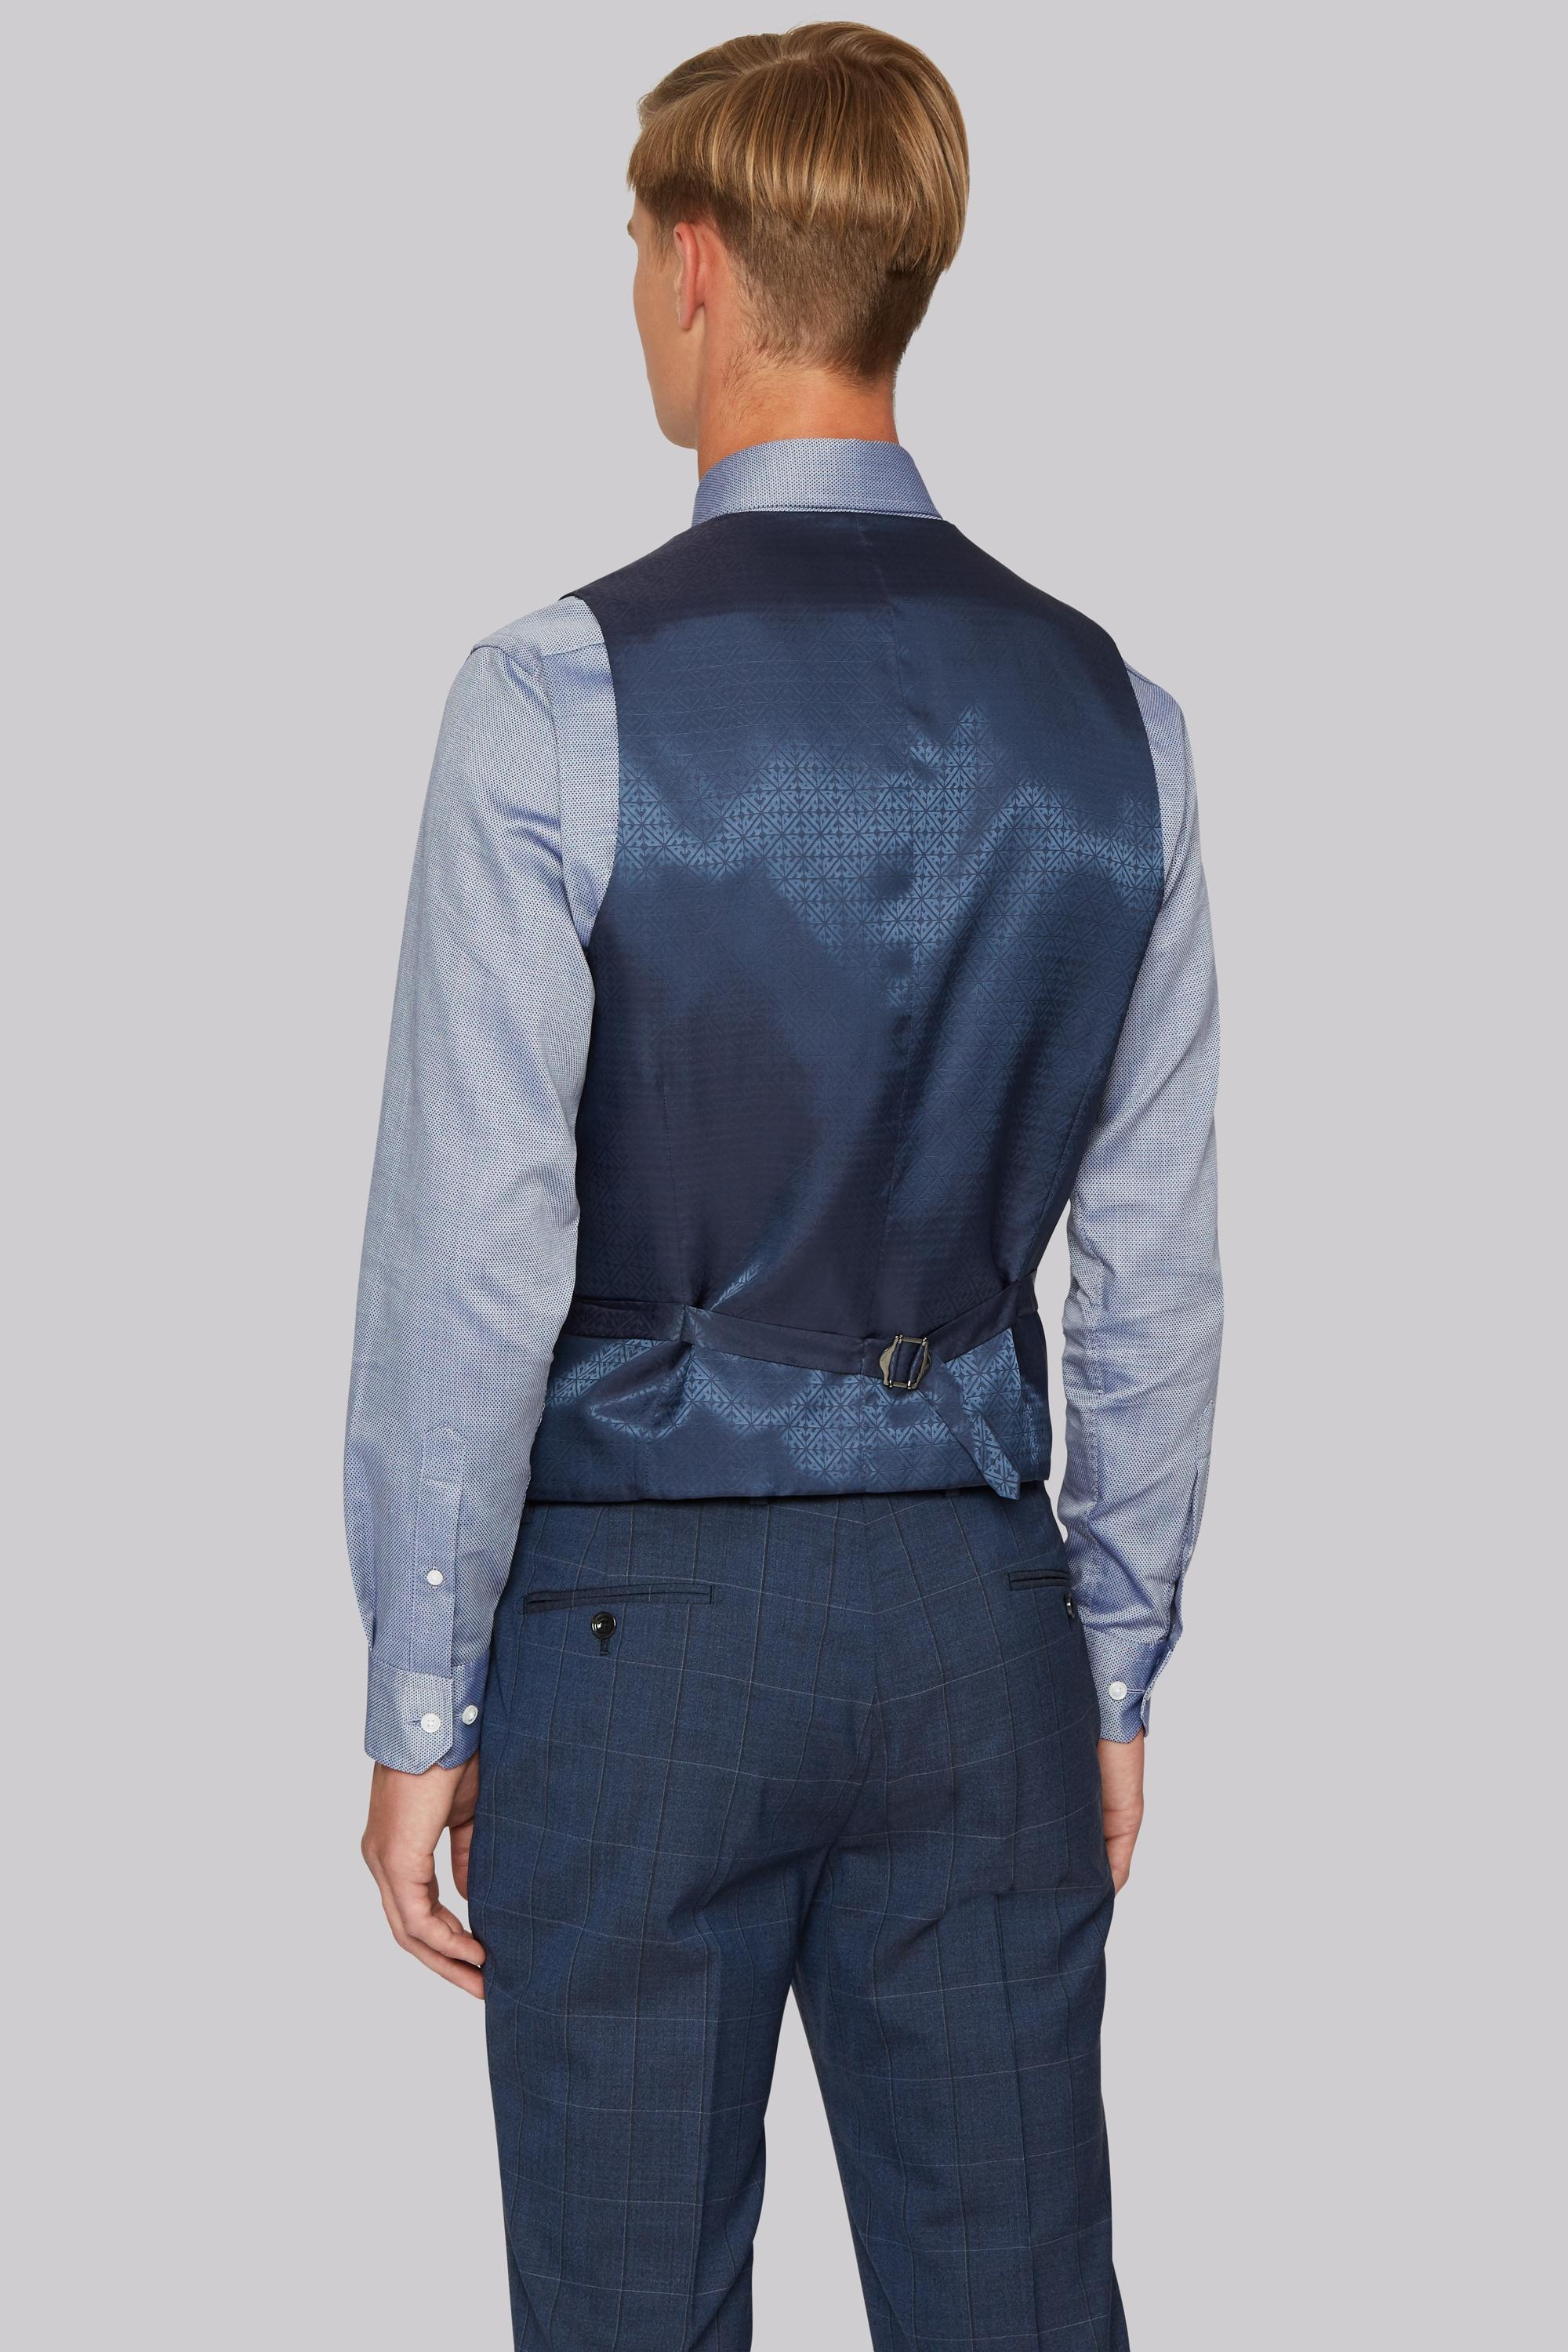 Hardy amies Tailored Fit Blue Melange Check Waistcoat in ...